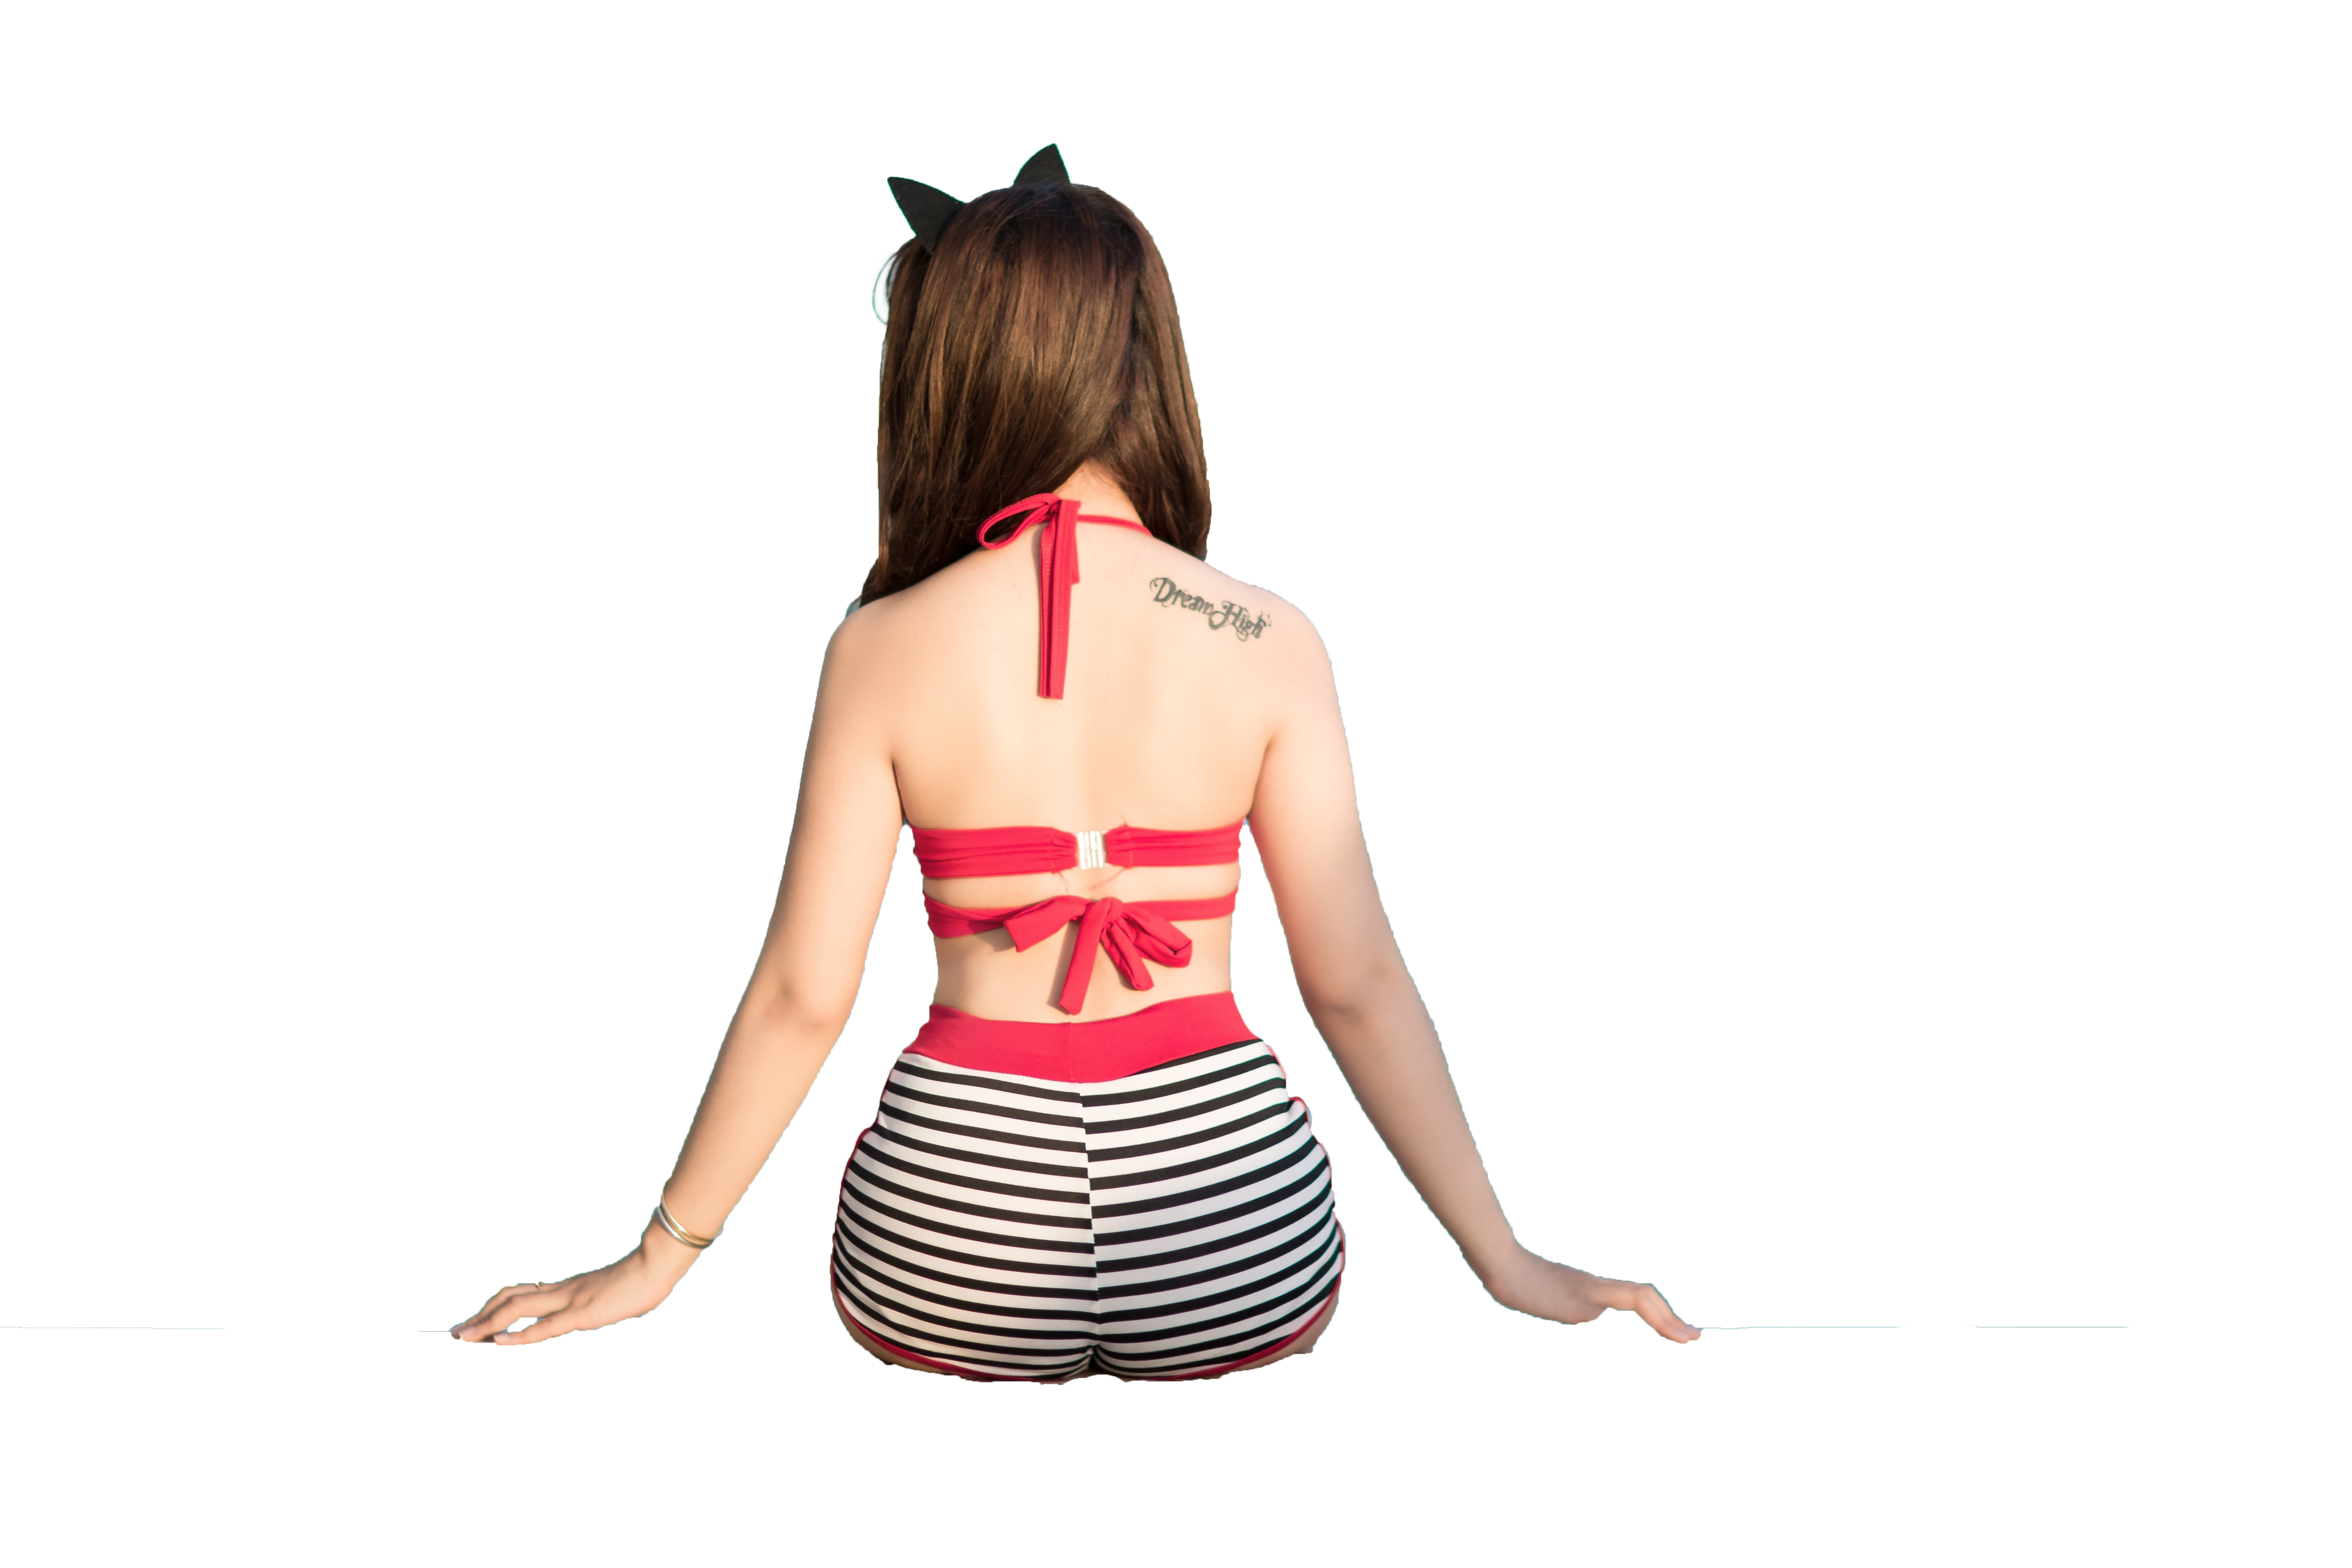 Sitting Girl Backview On Beach Transparent Background PNG